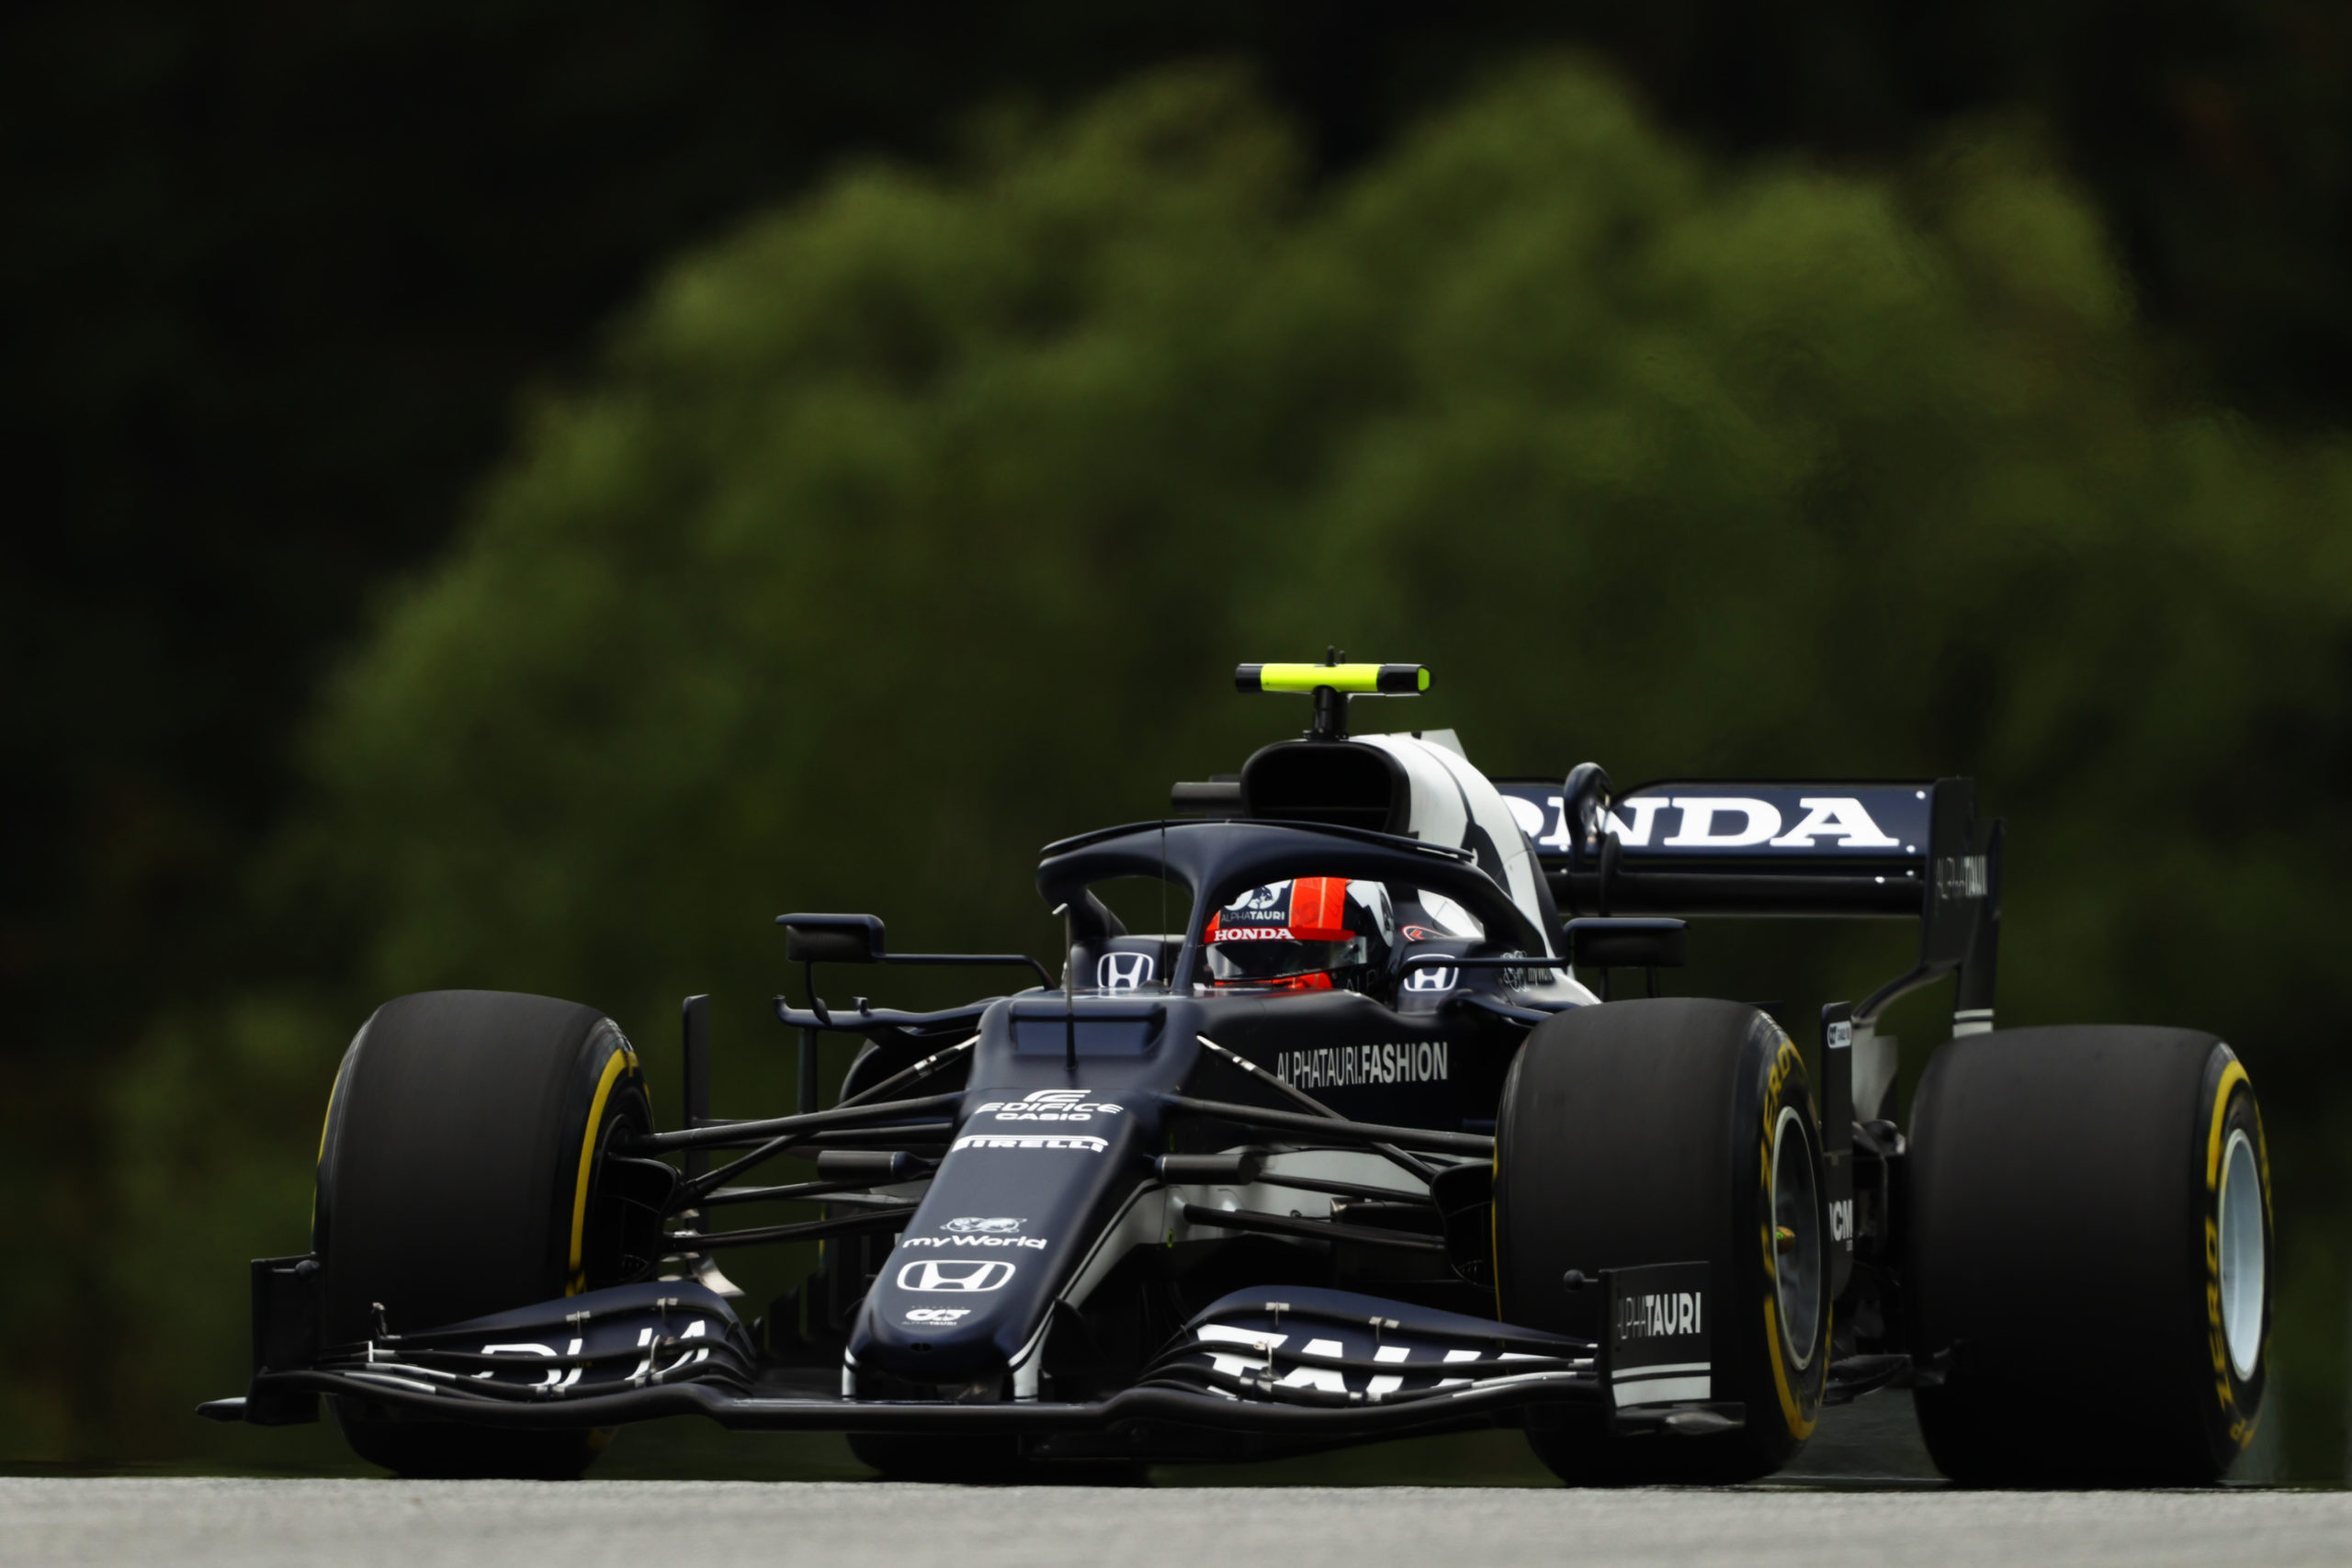 SPIELBERG, AUSTRIA - JULY 02: Pierre Gasly of France driving the (10) Scuderia AlphaTauri AT02 Honda during practice ahead of the F1 Grand Prix of Austria at Red Bull Ring on July 02, 2021 in Spielberg, Austria. (Photo by Bryn Lennon/Getty Images) // Getty Images / Red Bull Content Pool  // SI202107020241 // Usage for editorial use only //